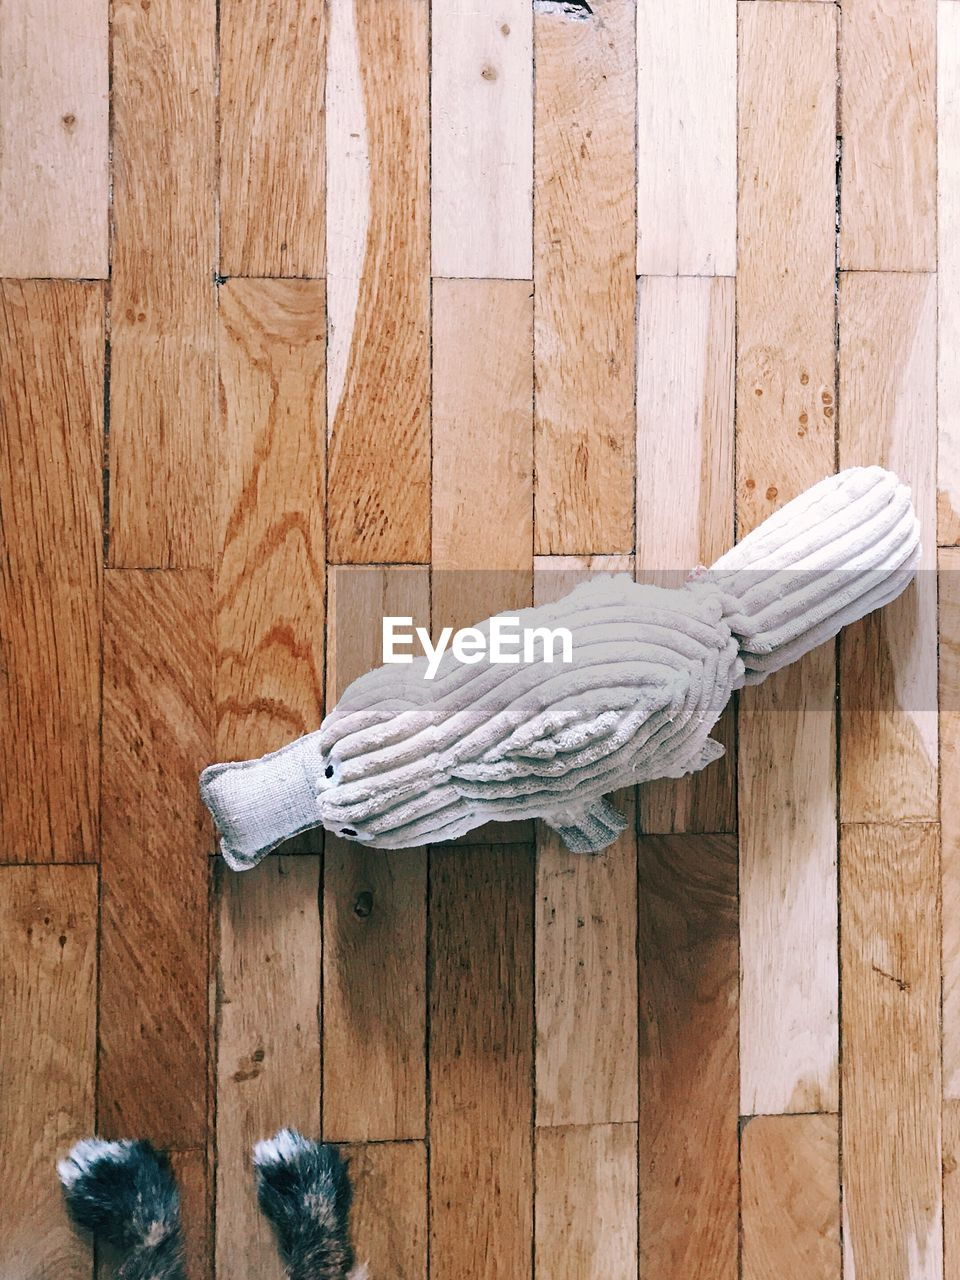 wood - material, no people, indoors, wood paneling, day, close-up, nature, animal themes